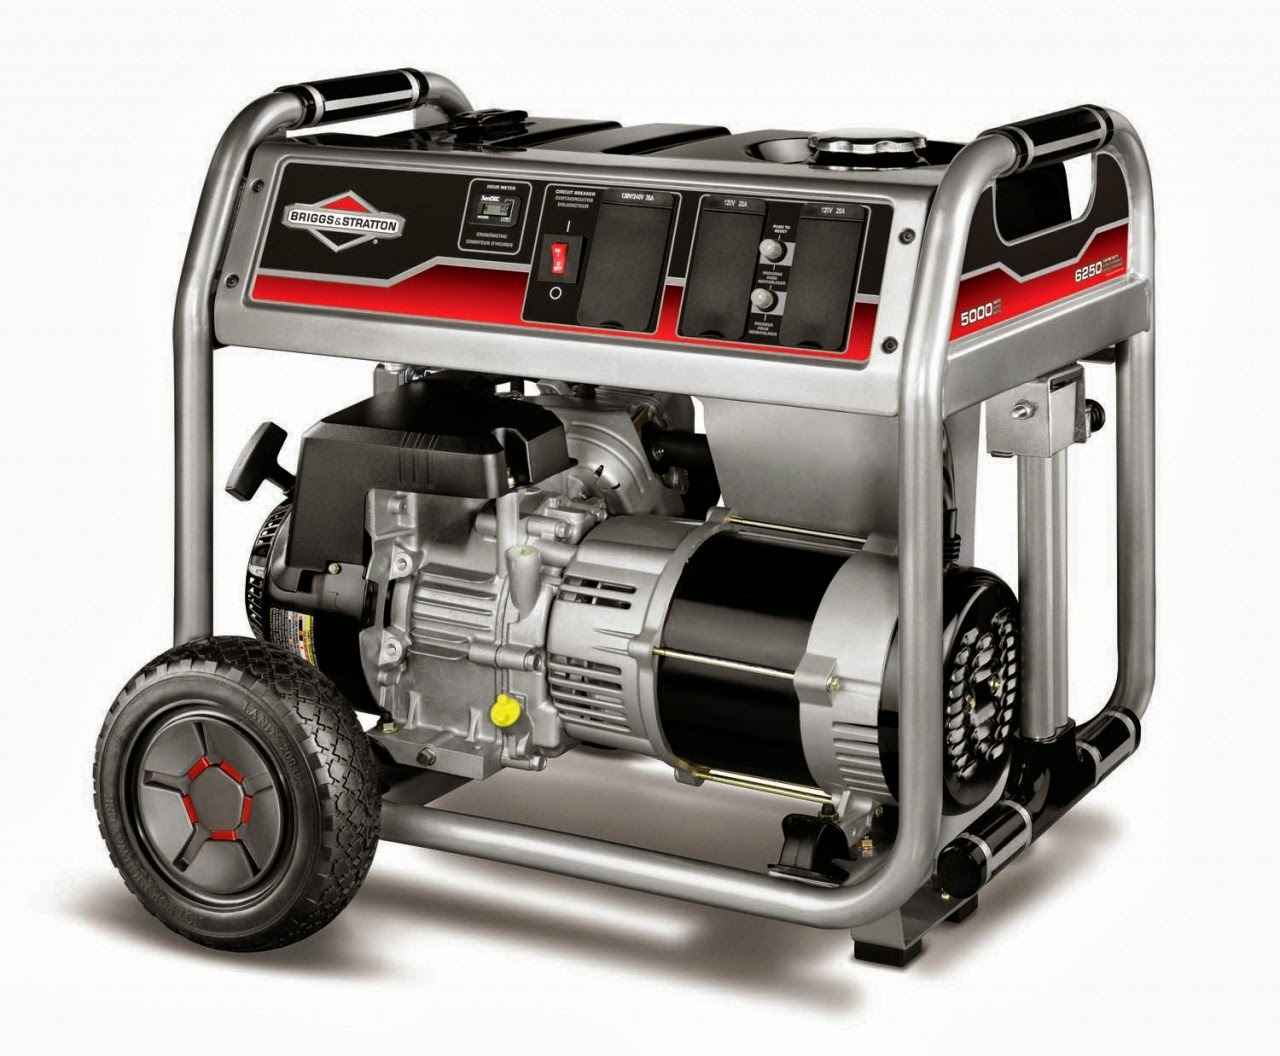 home depot portable natural gas generators with Todo Lo Que Tenes Que Saber Sobre Generadores on For Your Safety Never Use A Gas Powered Portable Generator Indoors in addition 301462813 moreover How To Remove Bathroom Faucet Handle in addition Decorated Model Homes Tours in addition 172010.